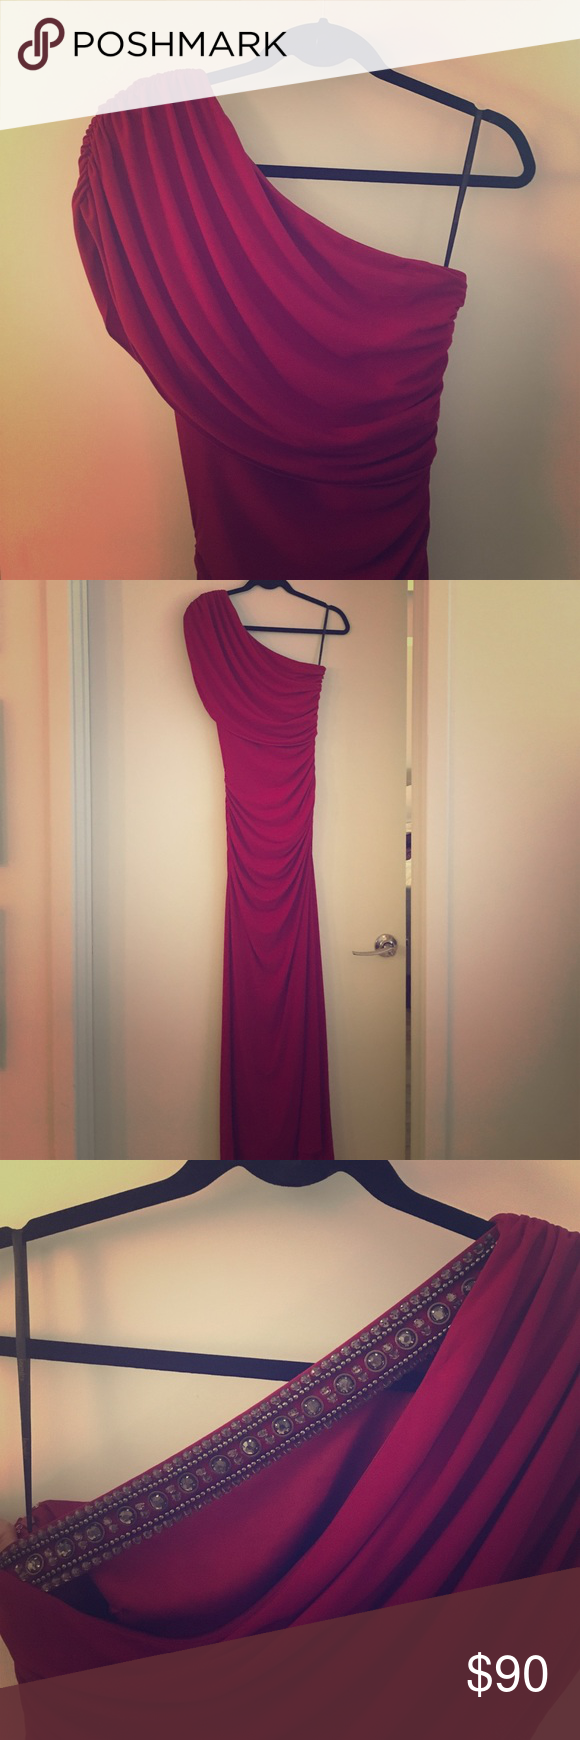 Laundry by Shelli Segal | Formal Dress (Size 2) Laundry by Shelli Segal Burgundy/Red One-Shoulder Evening Dress (Size 2). Wore this dress once to a holiday party, so it's like new! Dress has sparkling jewel and beaded accents in the back strap (as shown in picture) and the dress drapes gracefully over the shoulder. Ruched on the sides, which is extremely flattering on the body. No side slit.  - Polyester/Spandex material; polyester interior lining - Concealed side zip Laundry by Shelli Segal…